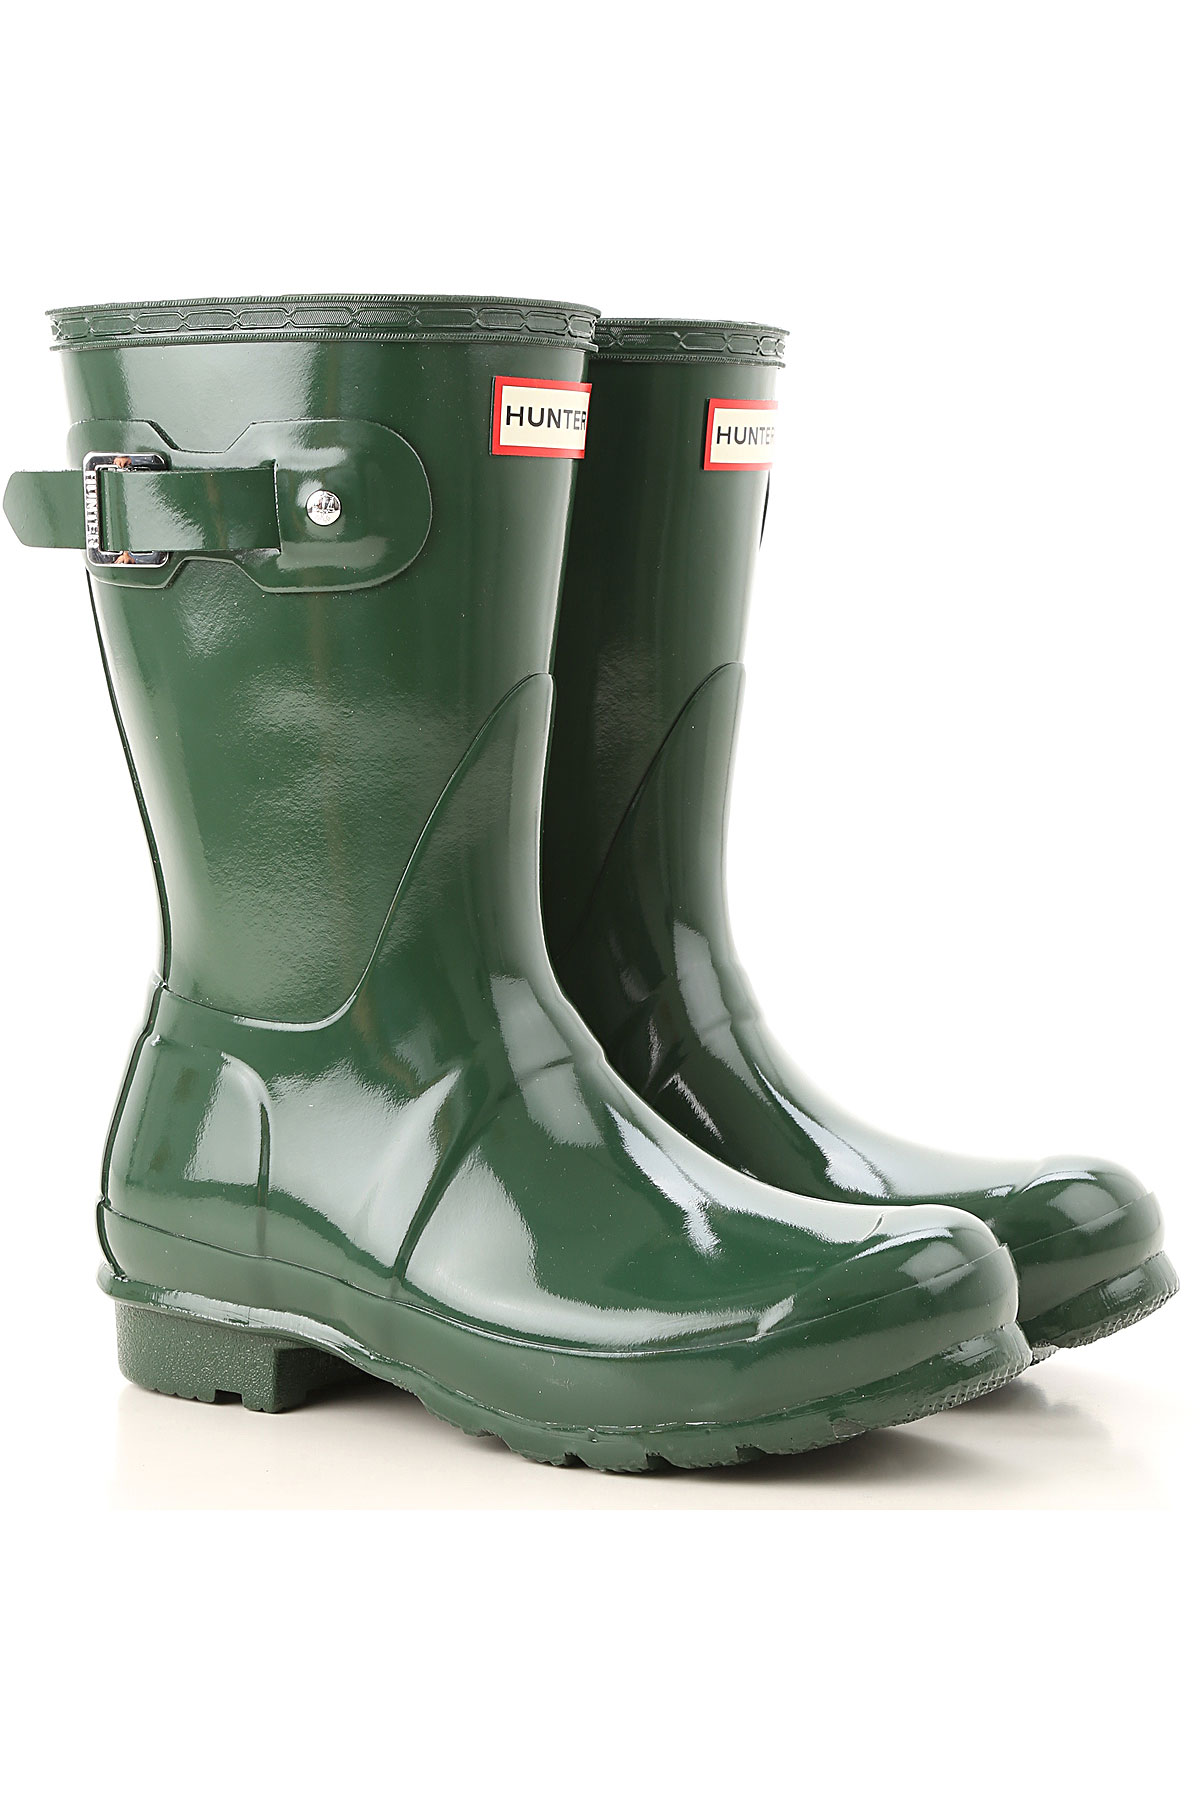 Image of Hunter Boots for Women, Booties, Green, Rubber, 2017, 6 7 8 9